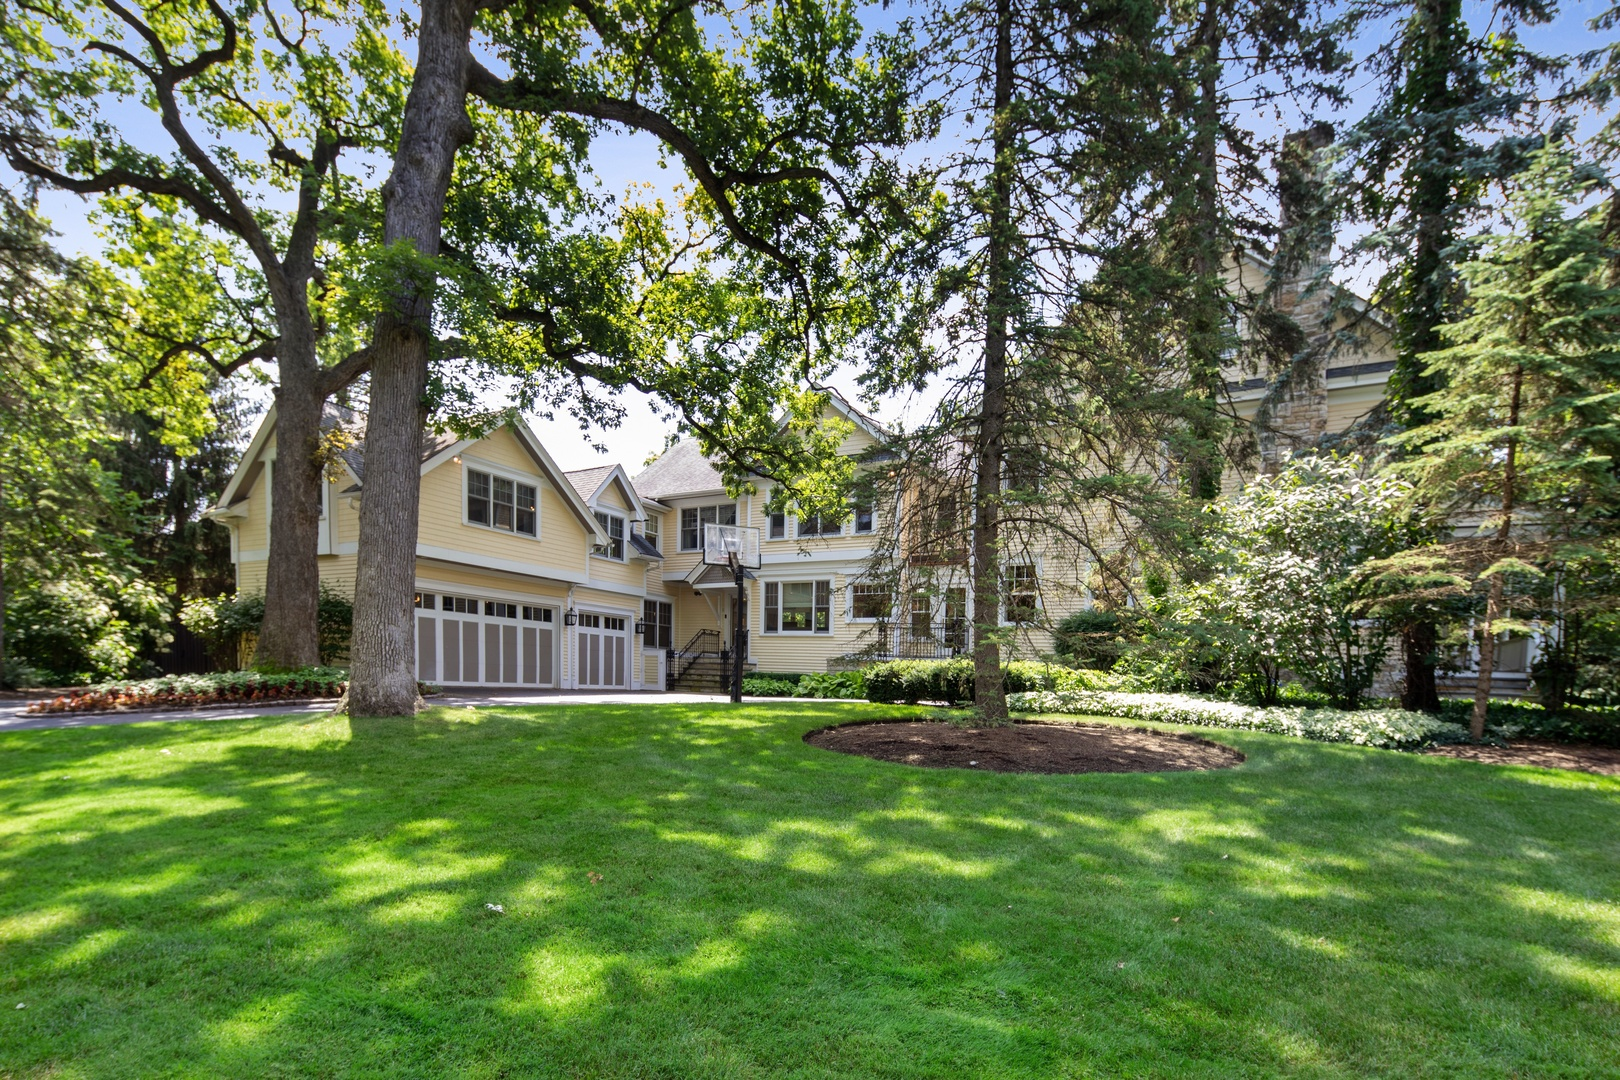 321 South County Line, Hinsdale, Illinois, 60521